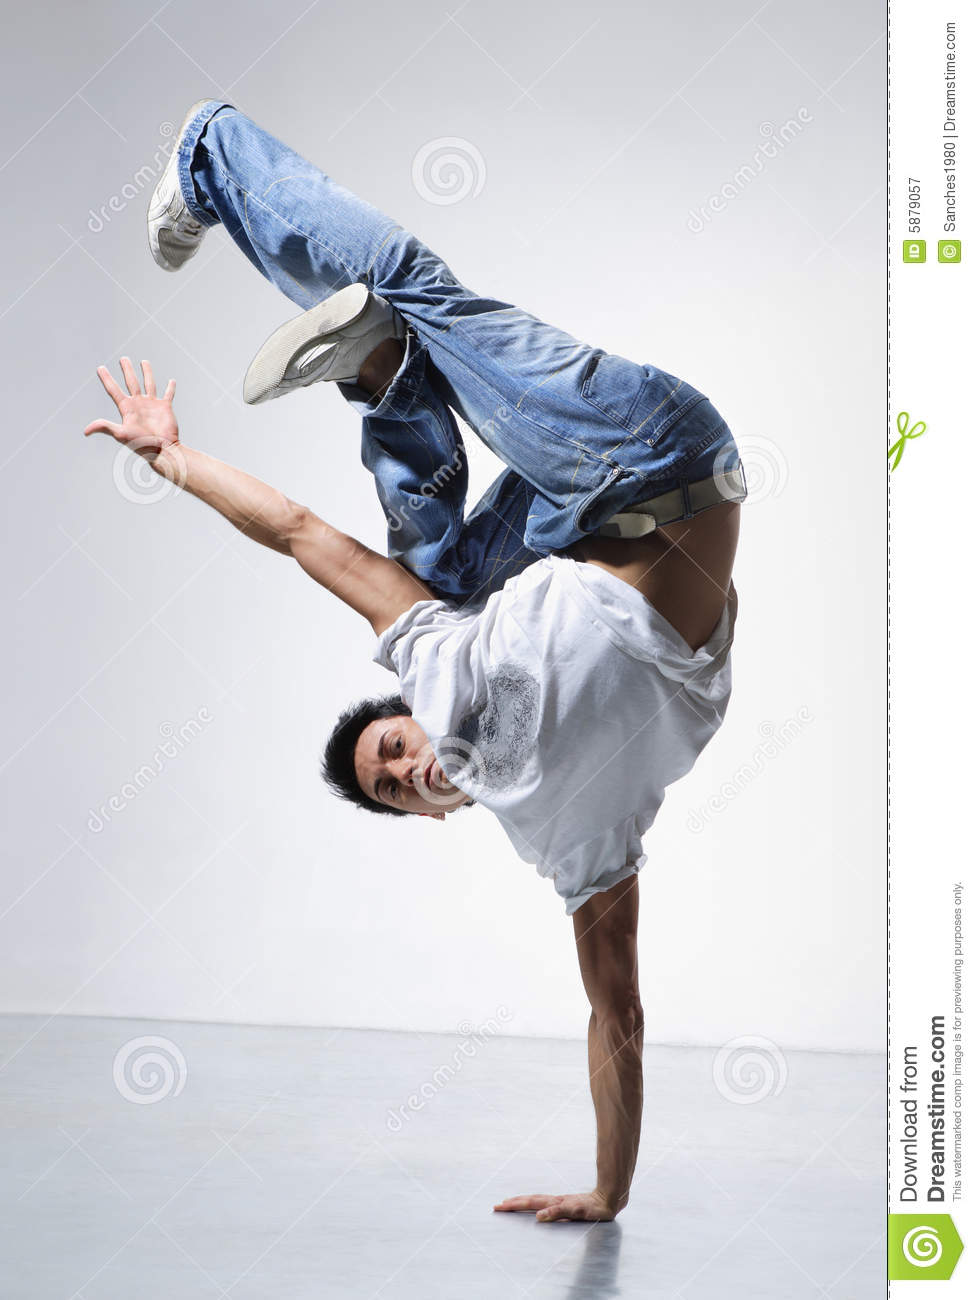 Breakdance royalty free stock photography image 5879057